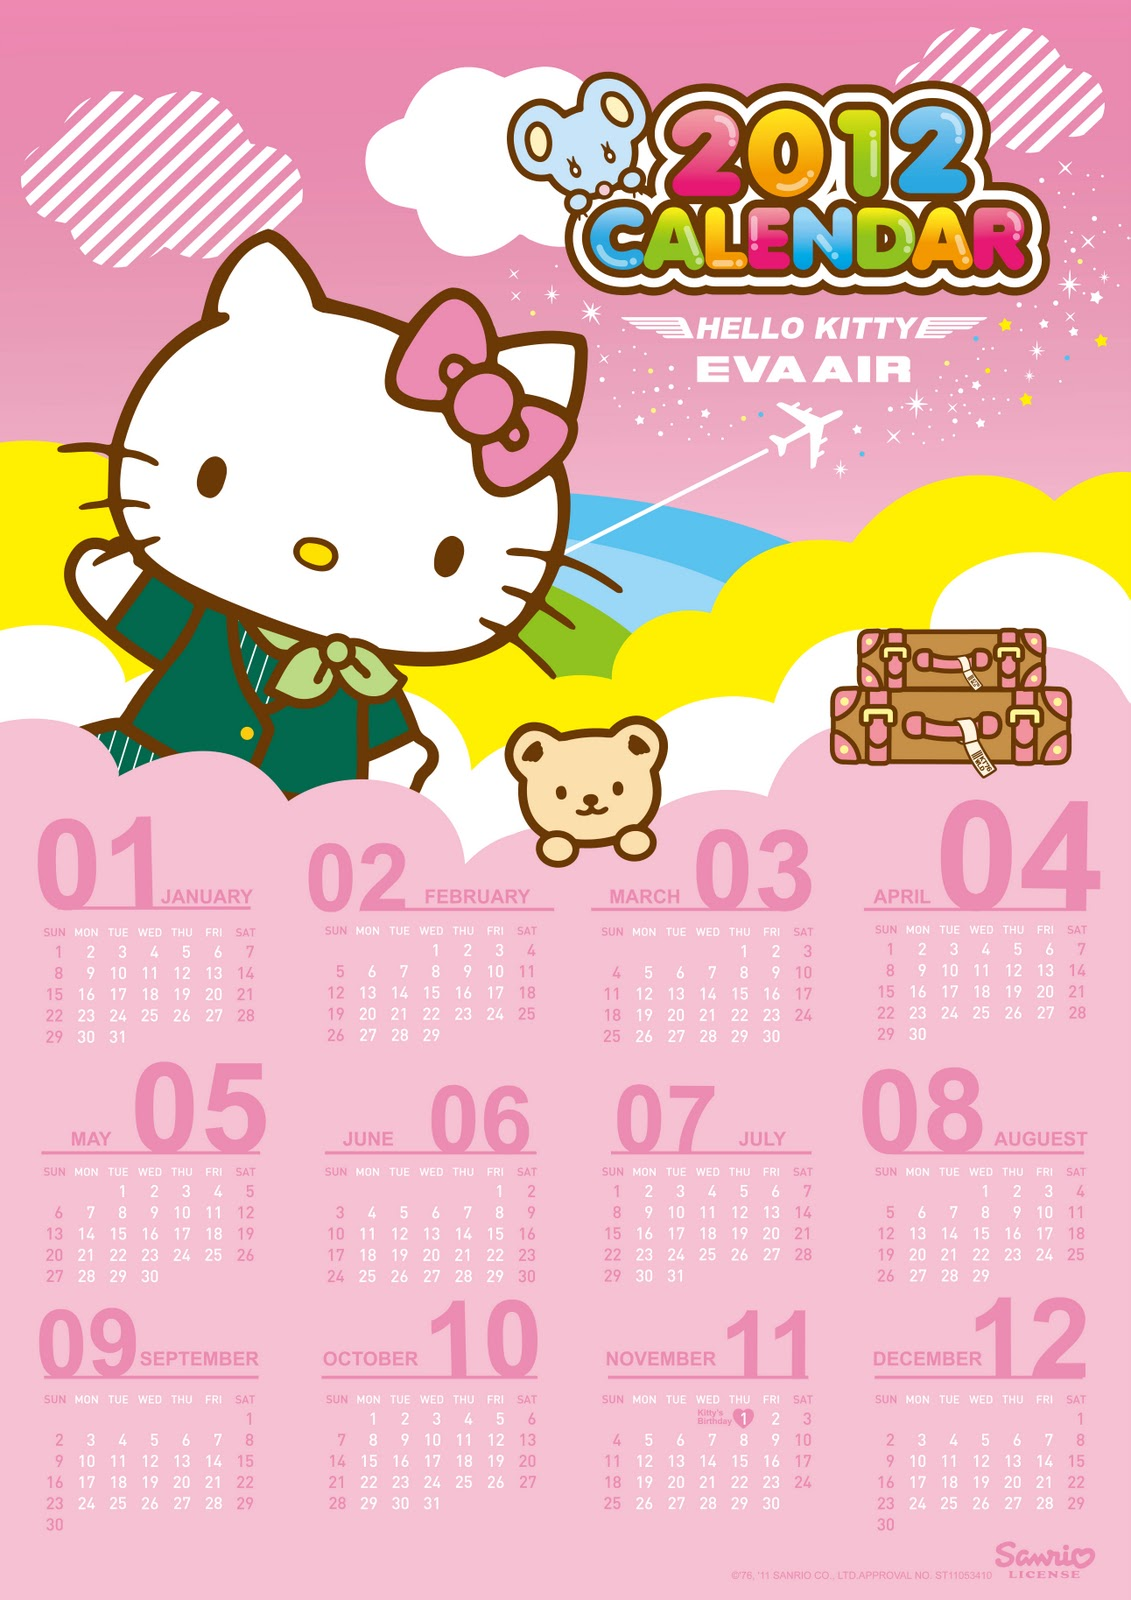 Beautiful Wallpaper Hello Kitty Cupcake - hello-kitty-2012-calendar-eva-airways  Graphic_49176.jpg